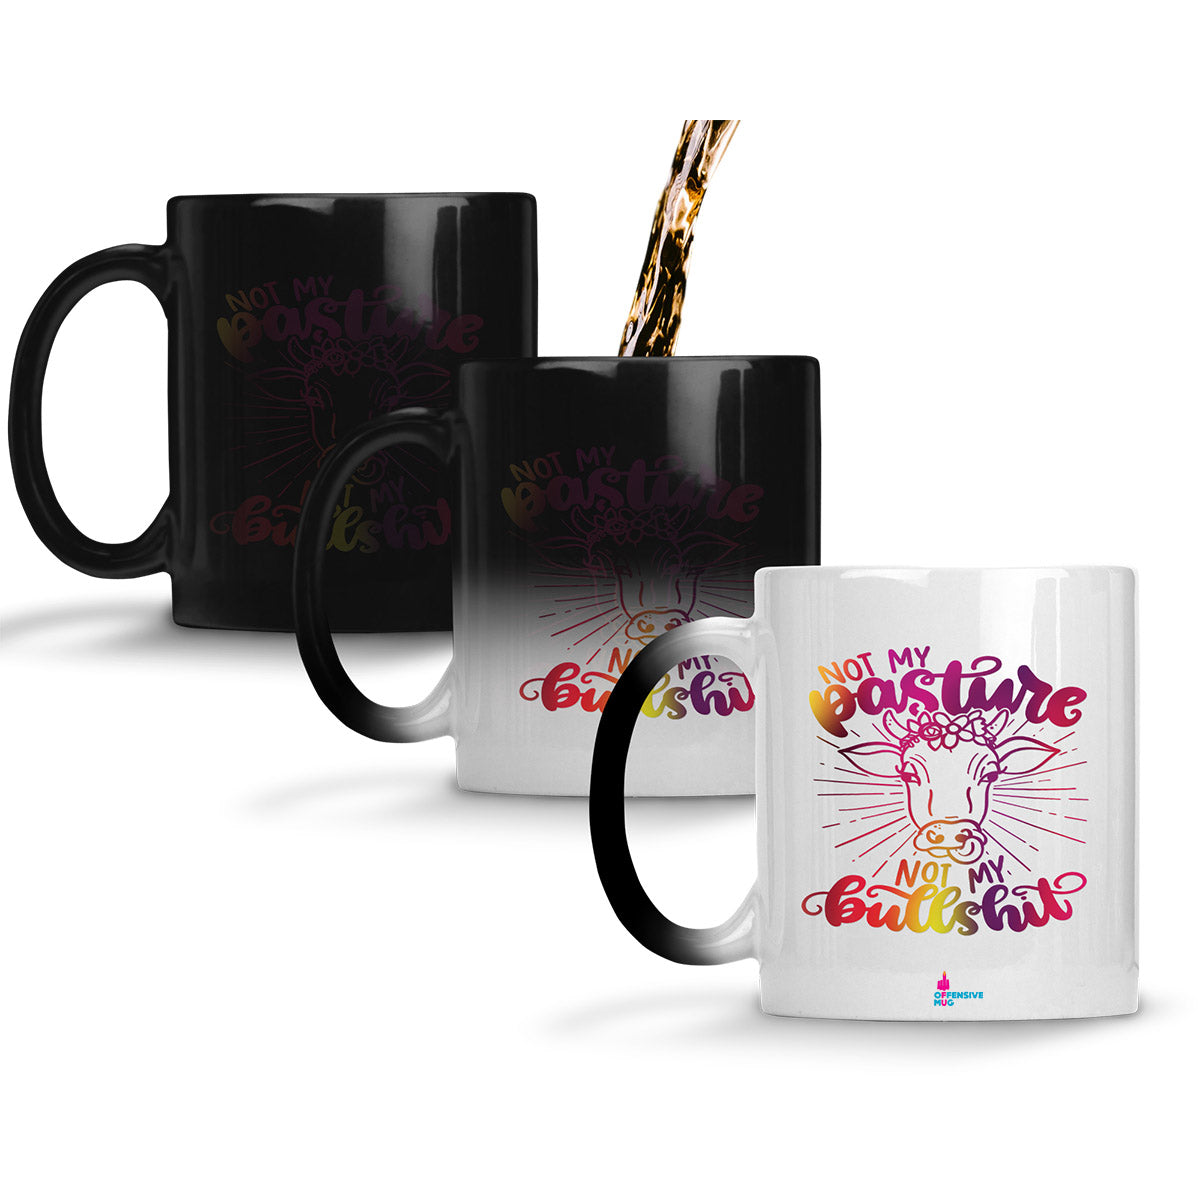 Diane Magic Mug - Offensive Mug